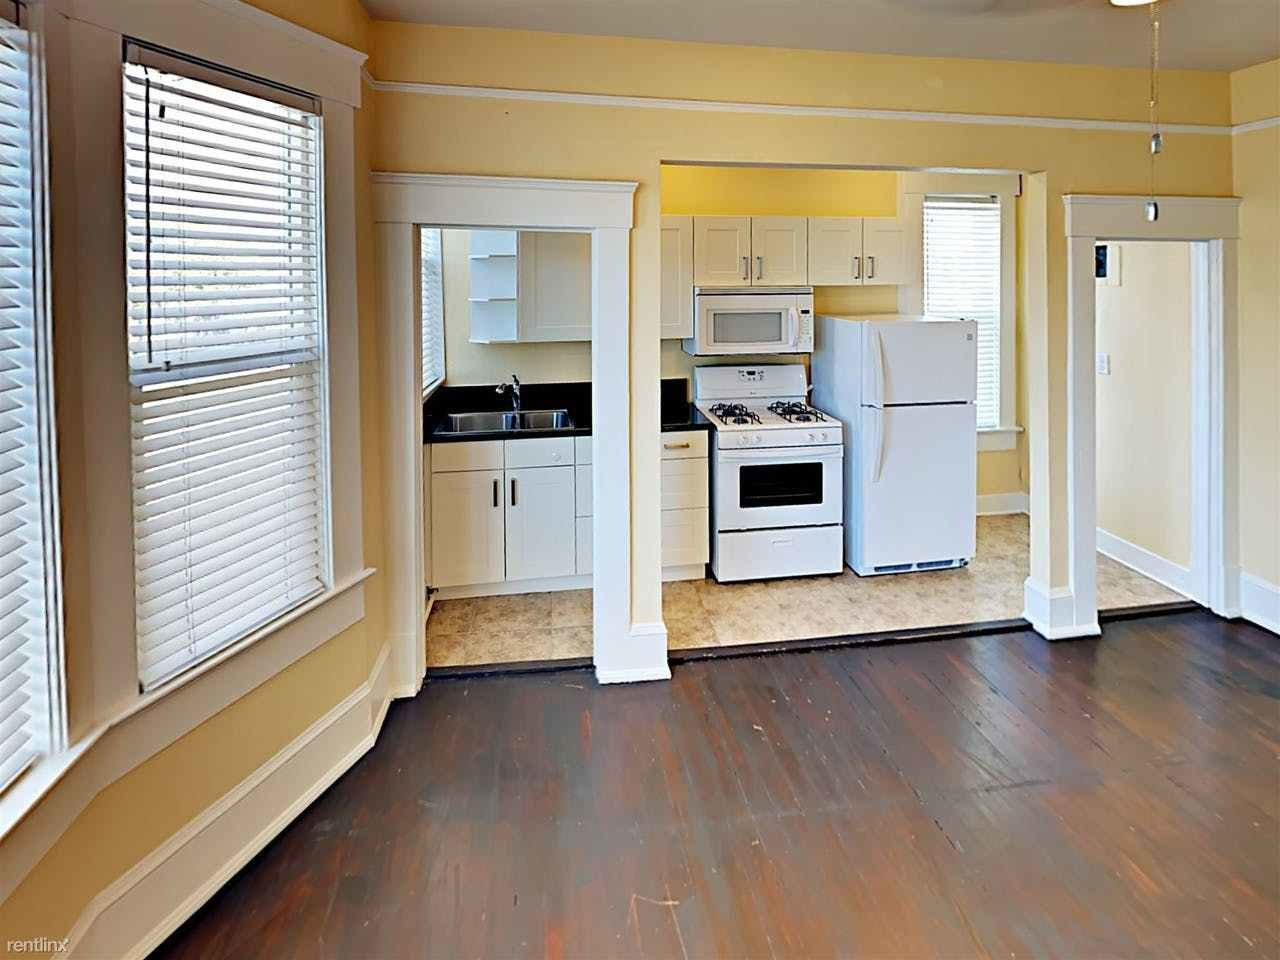 Best 4170 Park Blvd 12 San Diego Ca 92103 1 Bedroom With Pictures